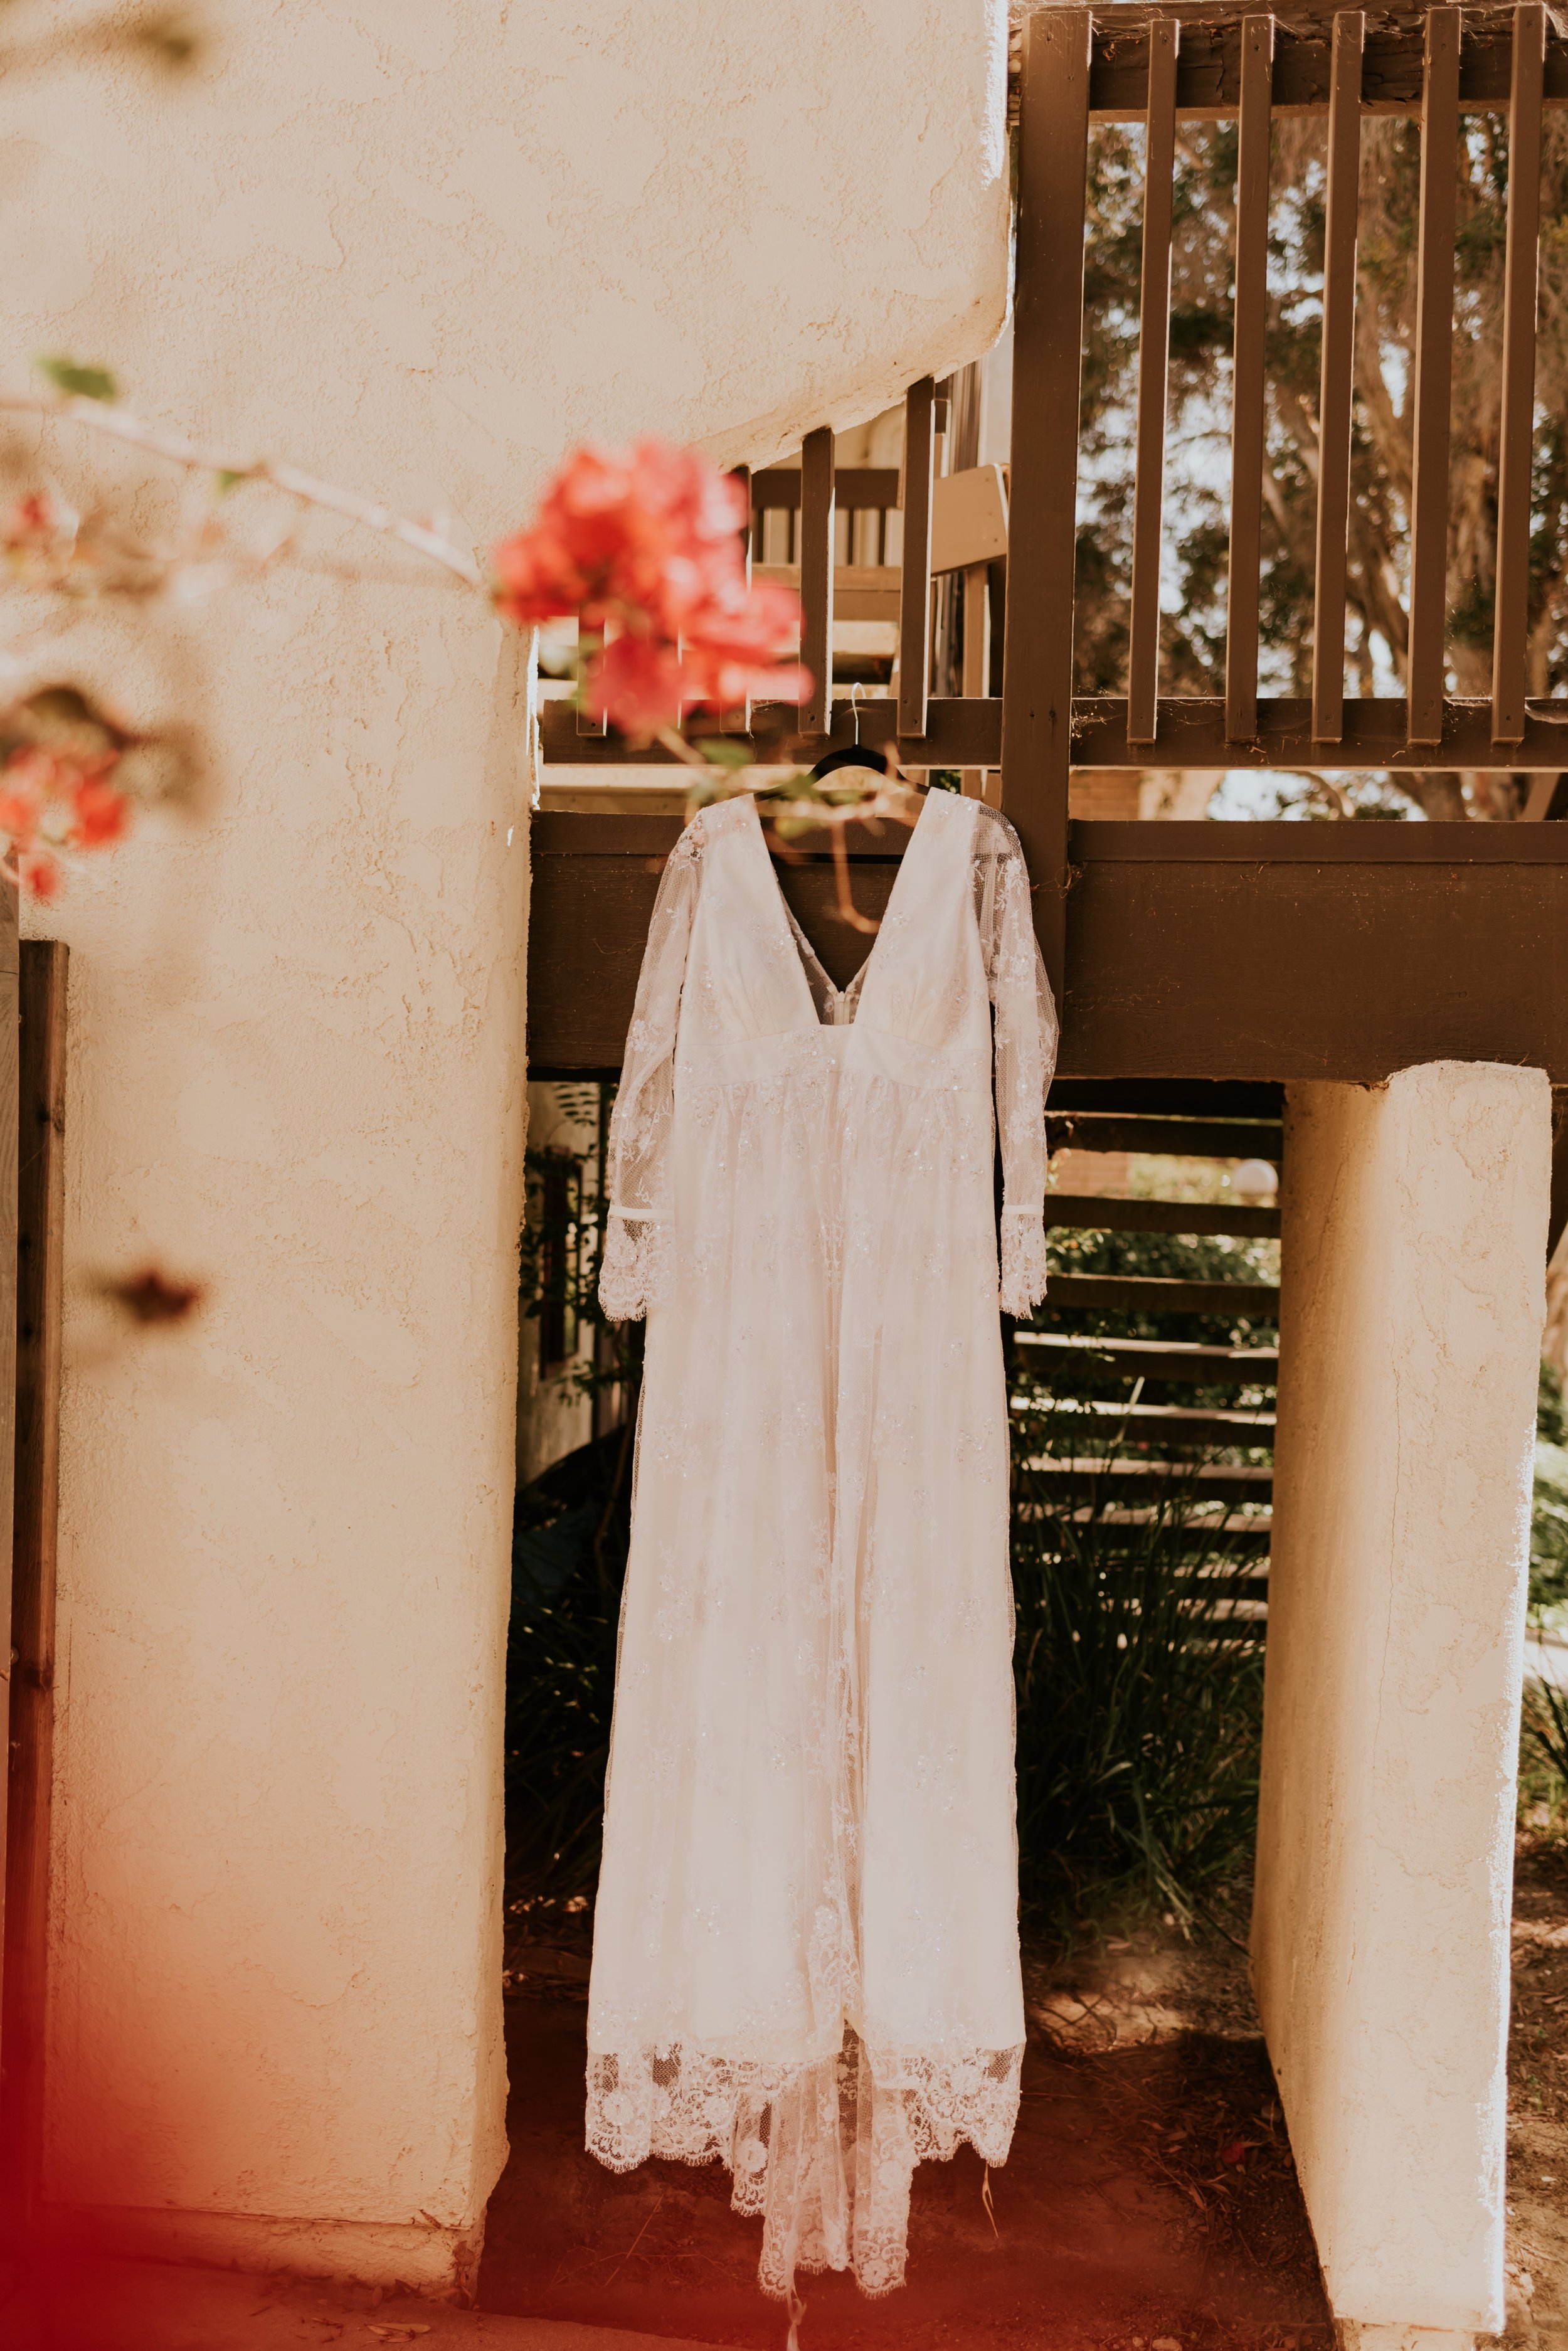 Ellwood Bluffs Santa Barbara Elopement | Carrie Rogers Photography | Getting Ready Details | Santa Barbara Wedding Photographer | California Elopement Photographer | #weddingphotography #elopement